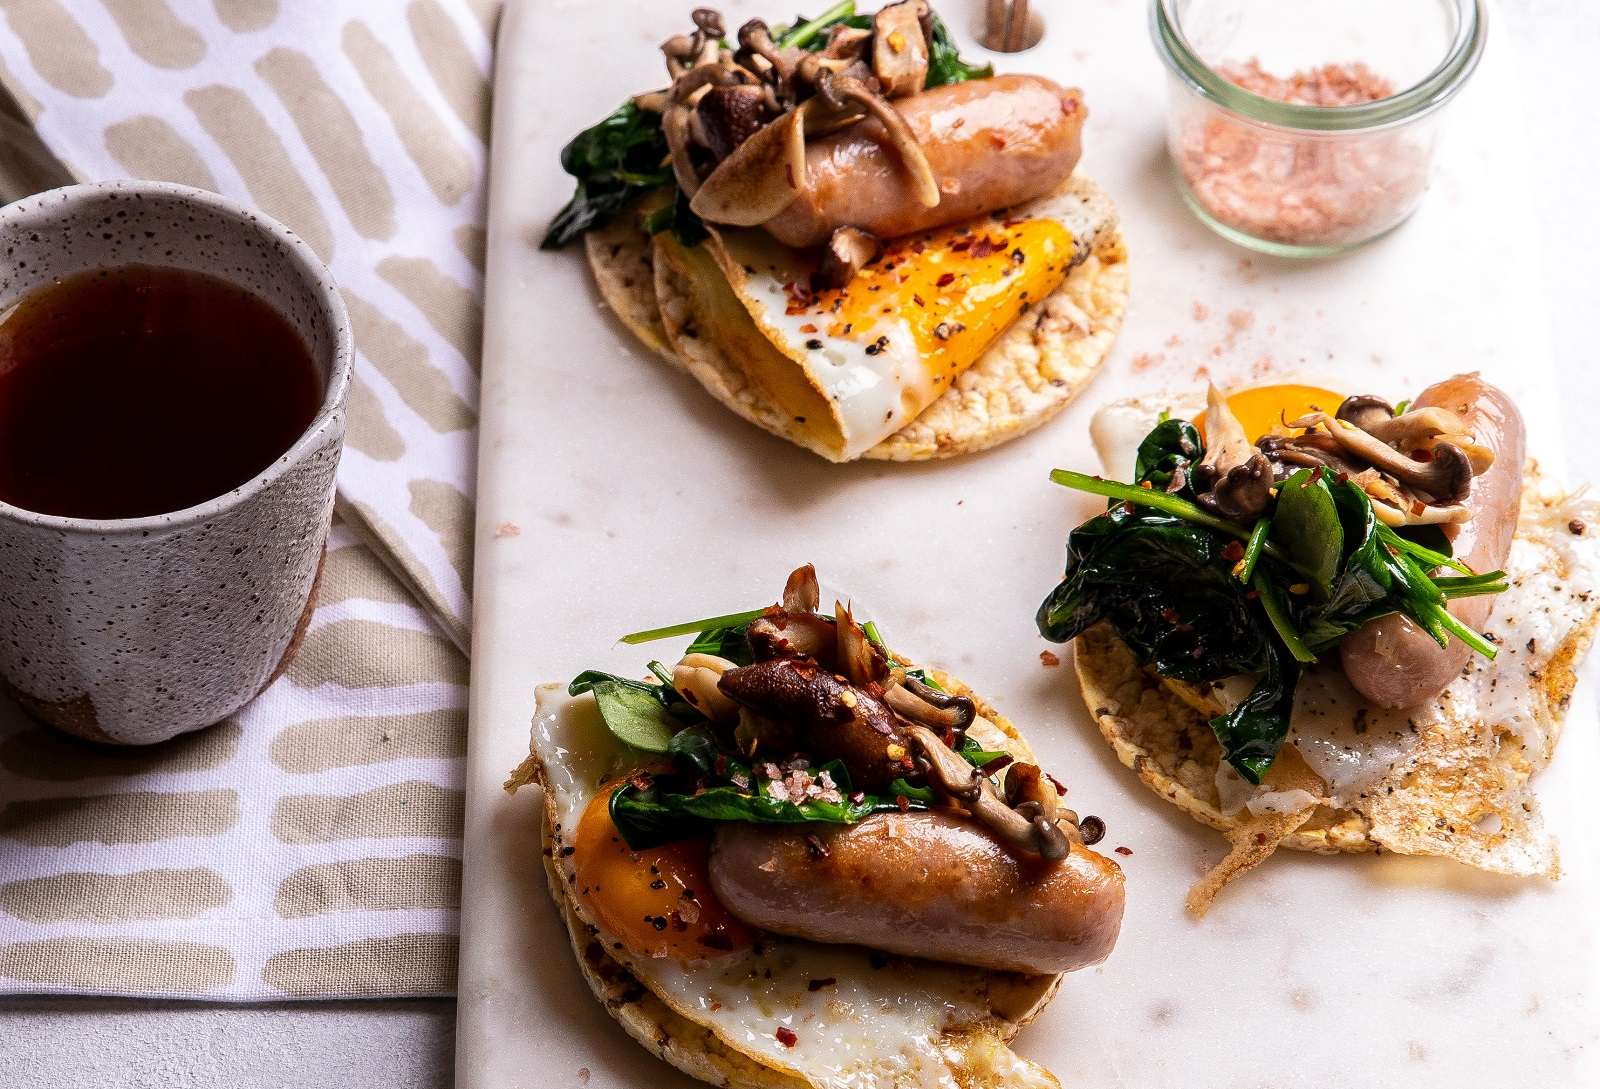 A big breakfast of Fried Egg, Sausage, Mushroom & Spinach on Corn Thins slices